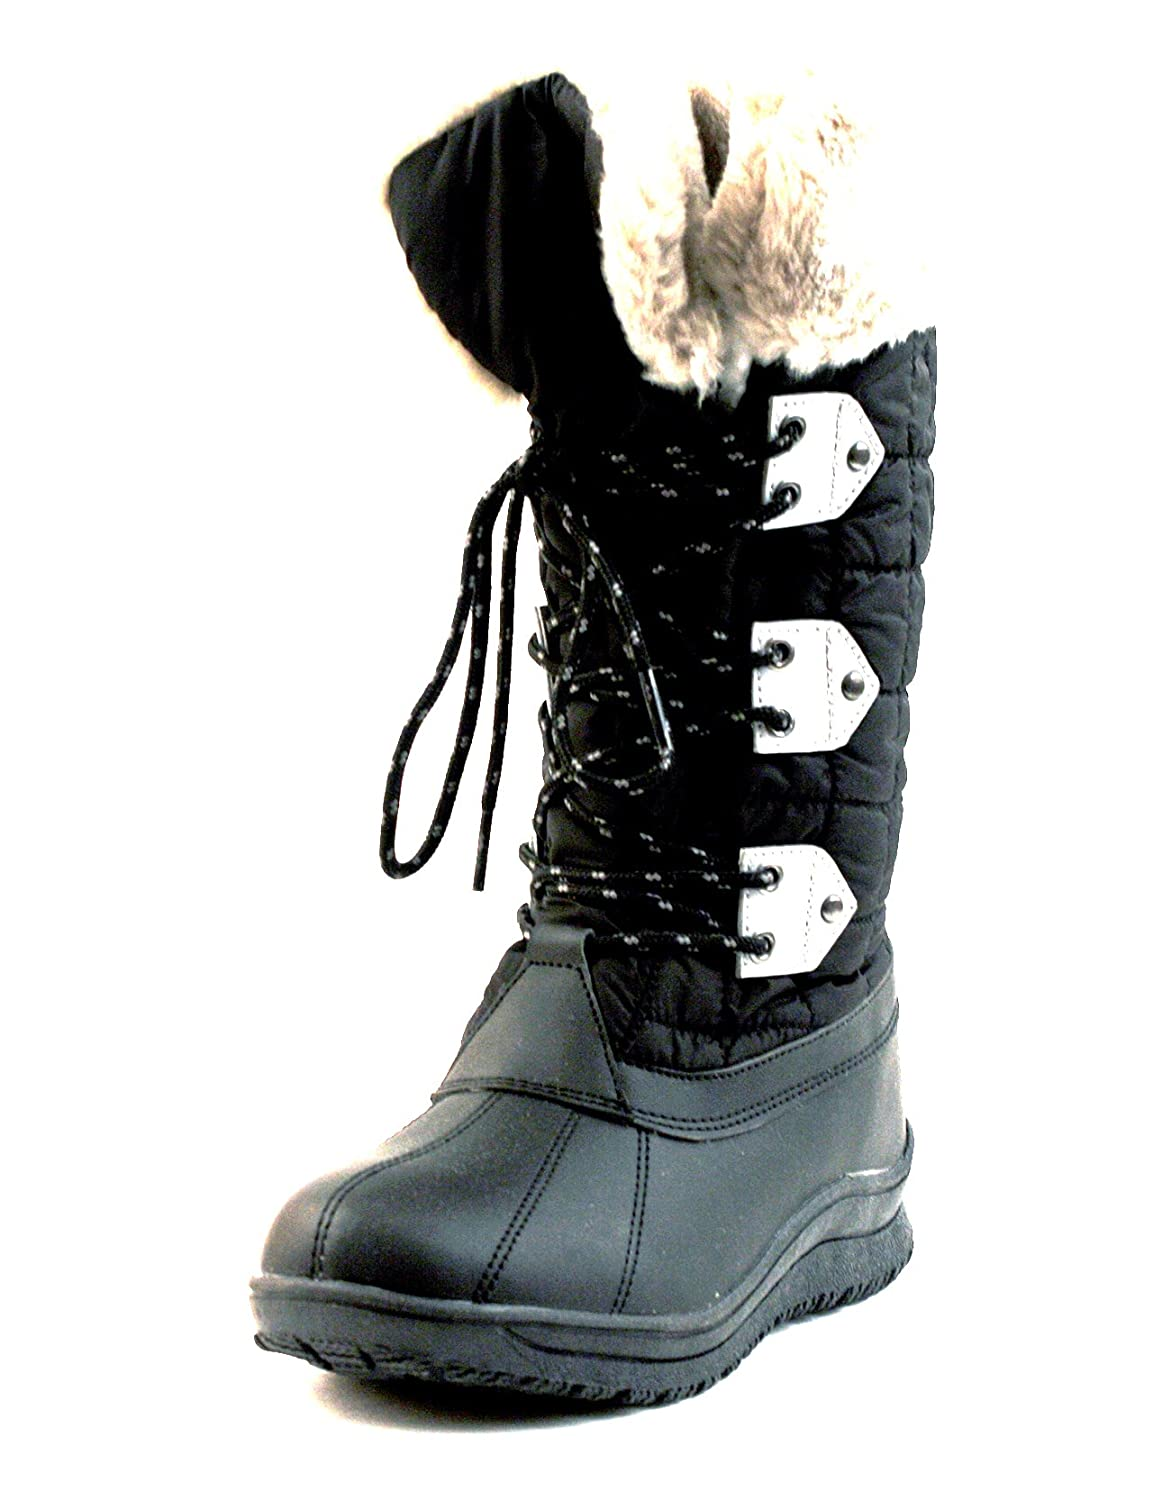 Luckers Women's Black Fashion Snow Boots